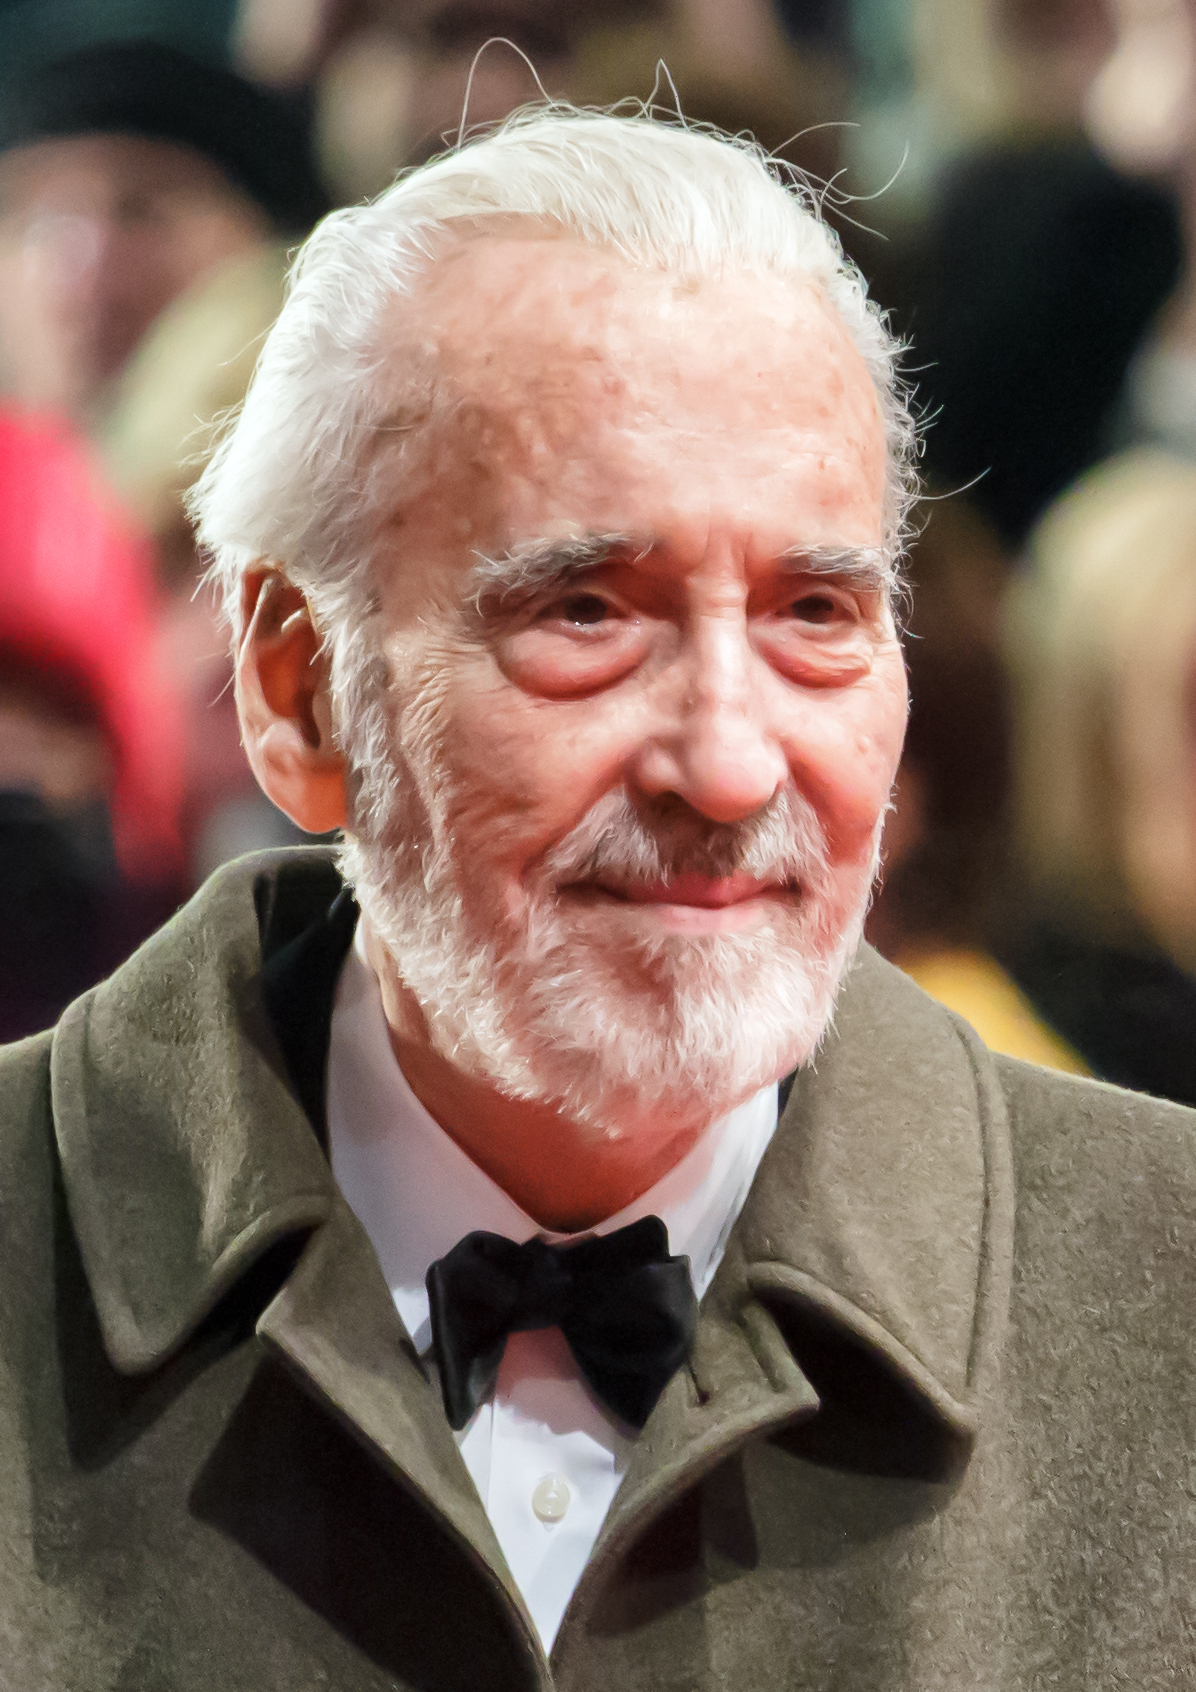 https://upload.wikimedia.org/wikipedia/commons/5/5a/Christopher_Lee_at_the_Berlin_International_Film_Festival_2013.jpg